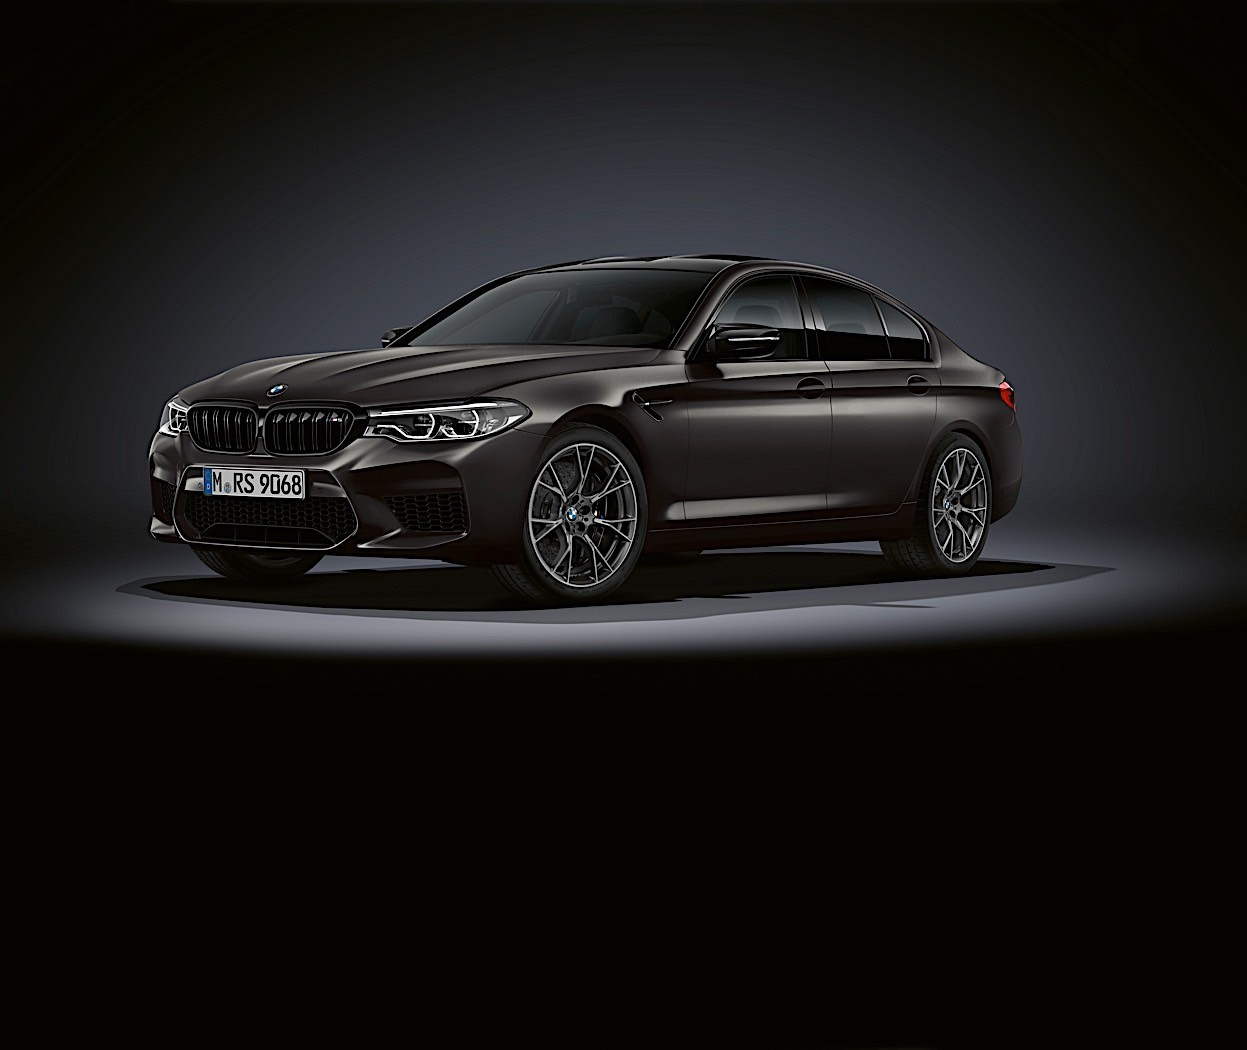 Bmw 2020: 2020 BMW M5 Edition 35 Jahre Takes Competition To New